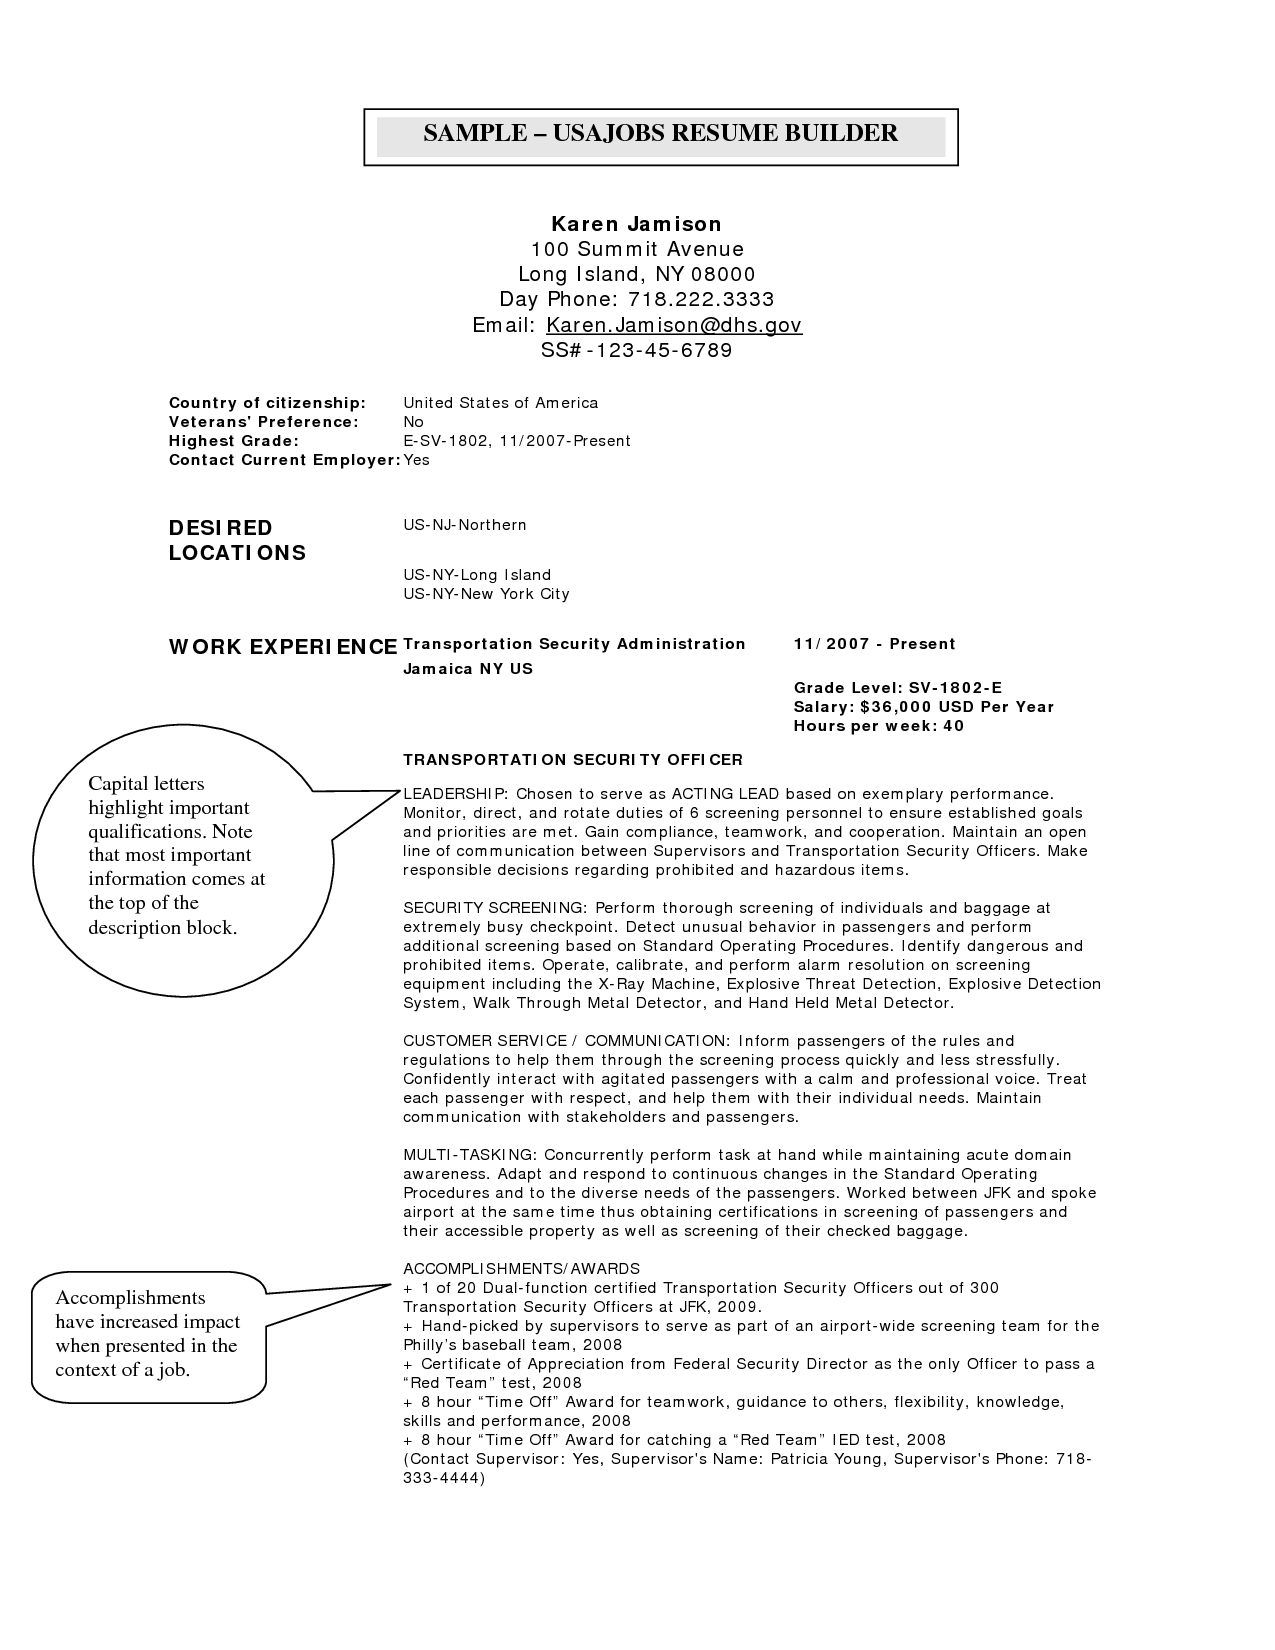 resume cover letter template for usajobs